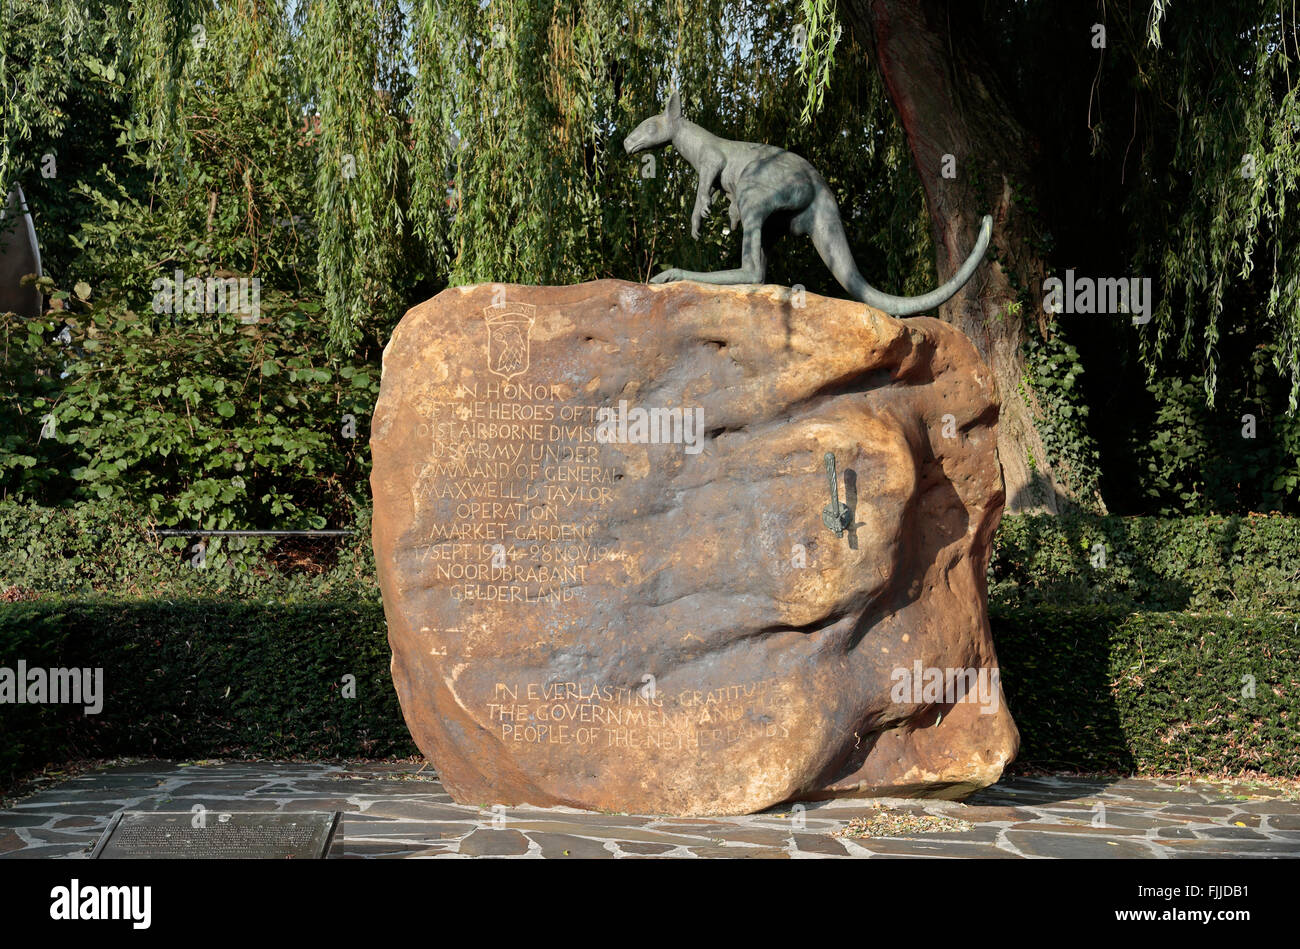 The 101st AB Memorial (designed by Neil Steenbergen) in Veghel, Netherlands. - Stock Image